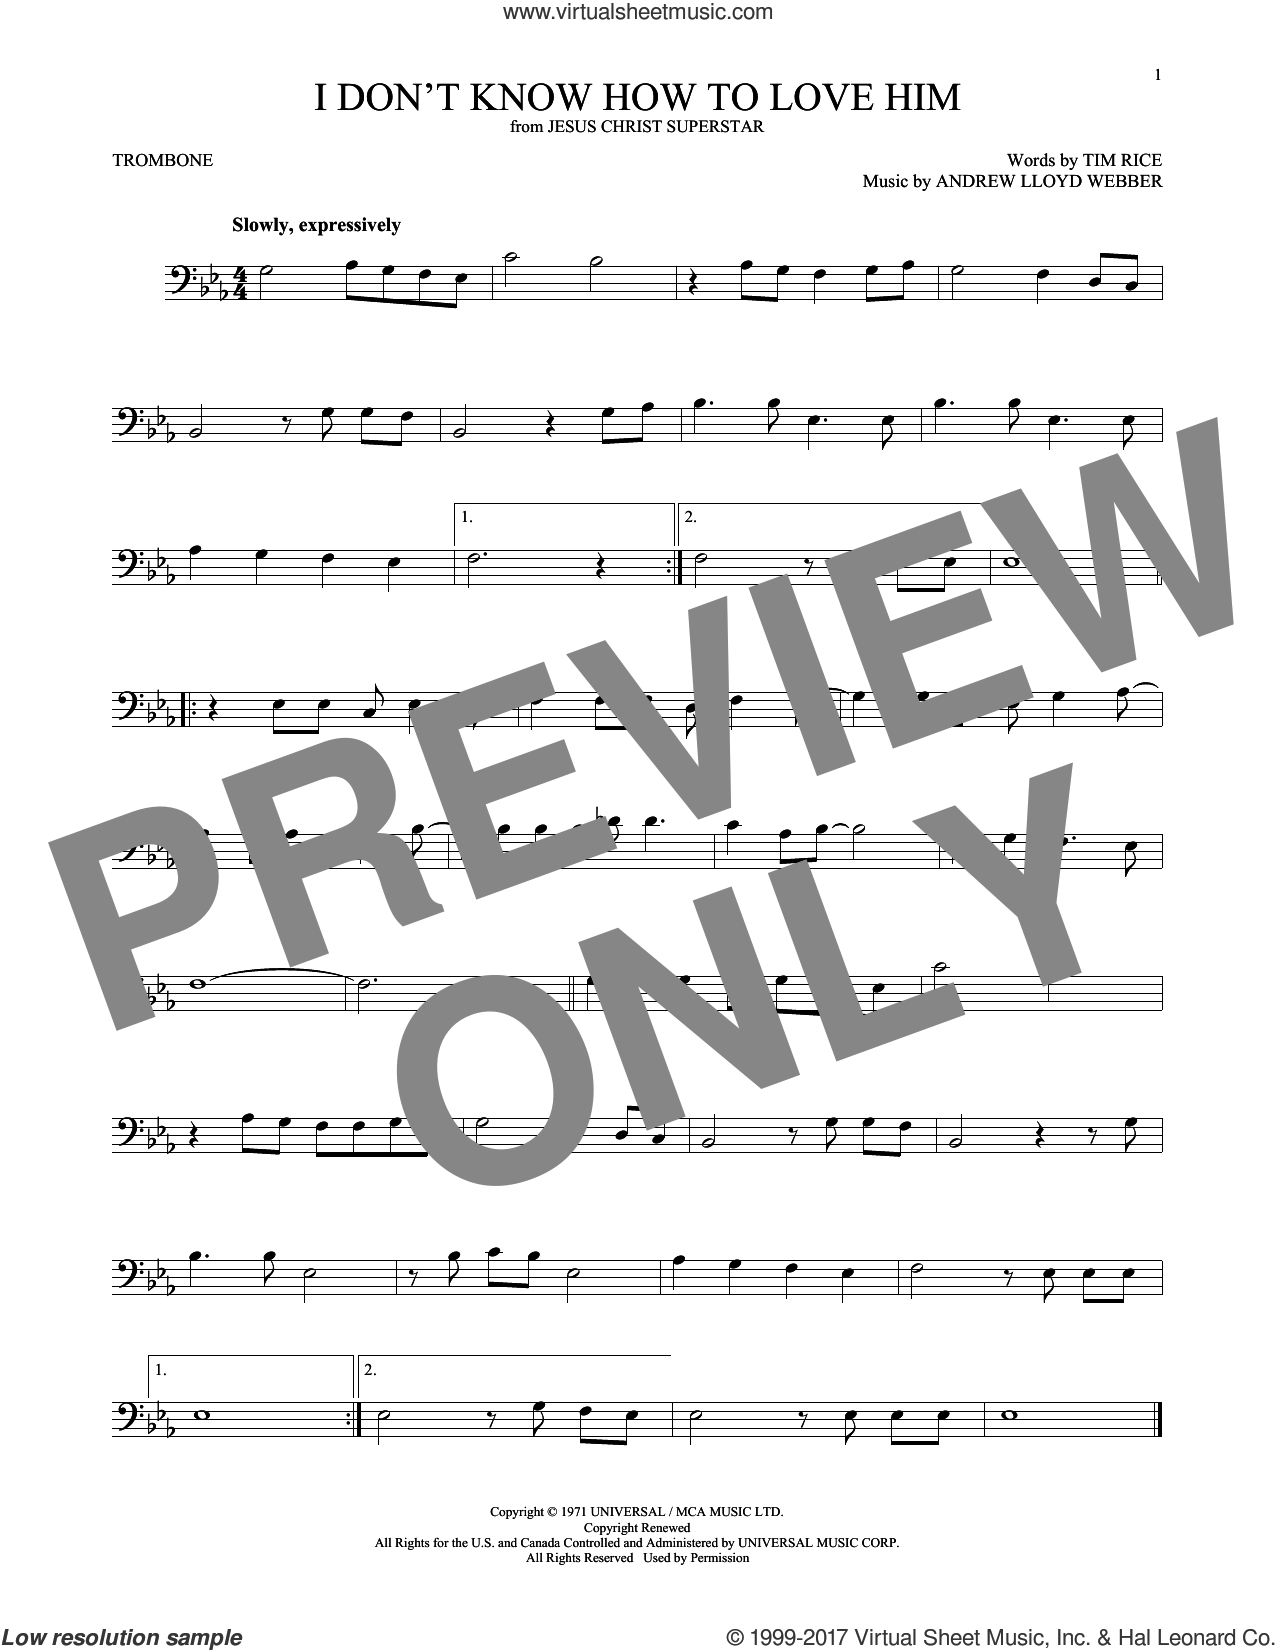 I Don't Know How To Love Him sheet music for trombone solo by Andrew Lloyd Webber, Helen Reddy and Tim Rice, intermediate skill level